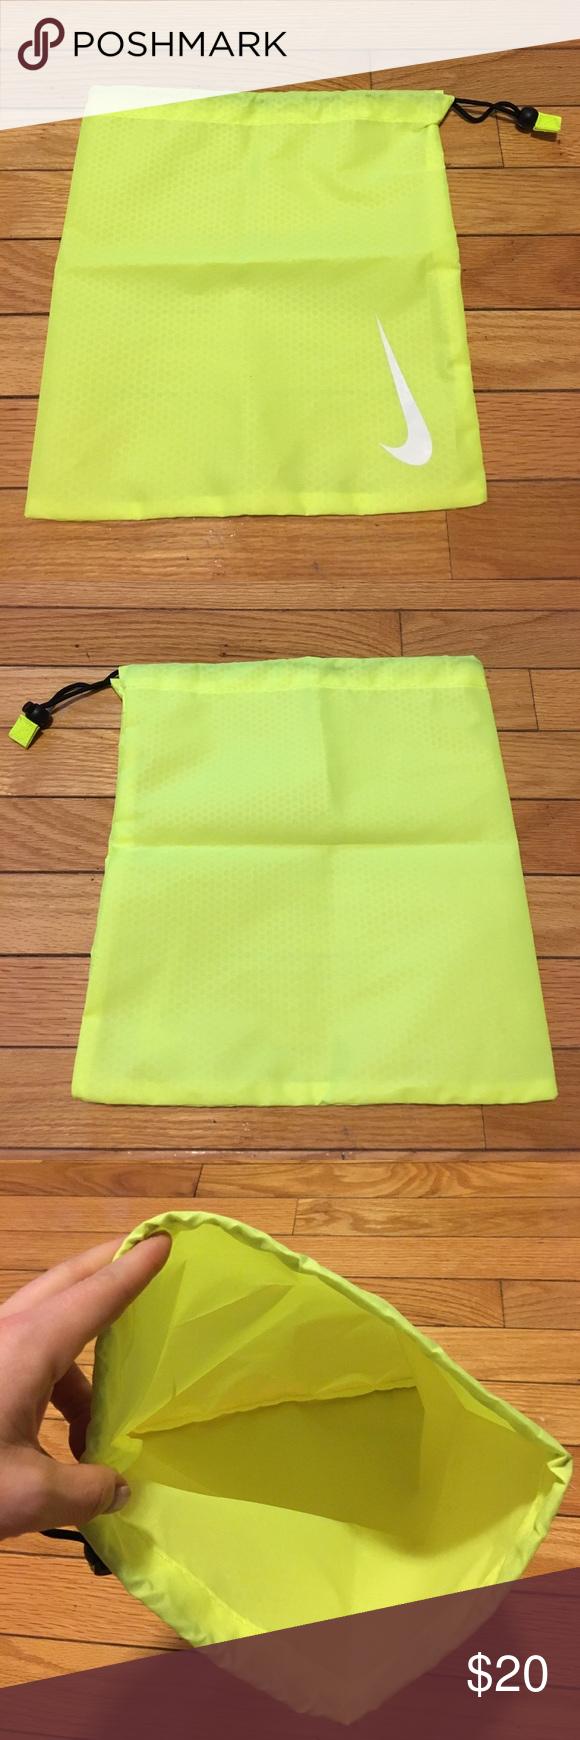 NWOT Nike Shoe/Gym Bag Protect your shoes with this bright neon yellow shoe bag from Nike. Drawstring closure at top and Nike logo on front. Bag measures approximately 12x12. Keywords: gym, sports, sneaker Nike Shoes Athletic Shoes